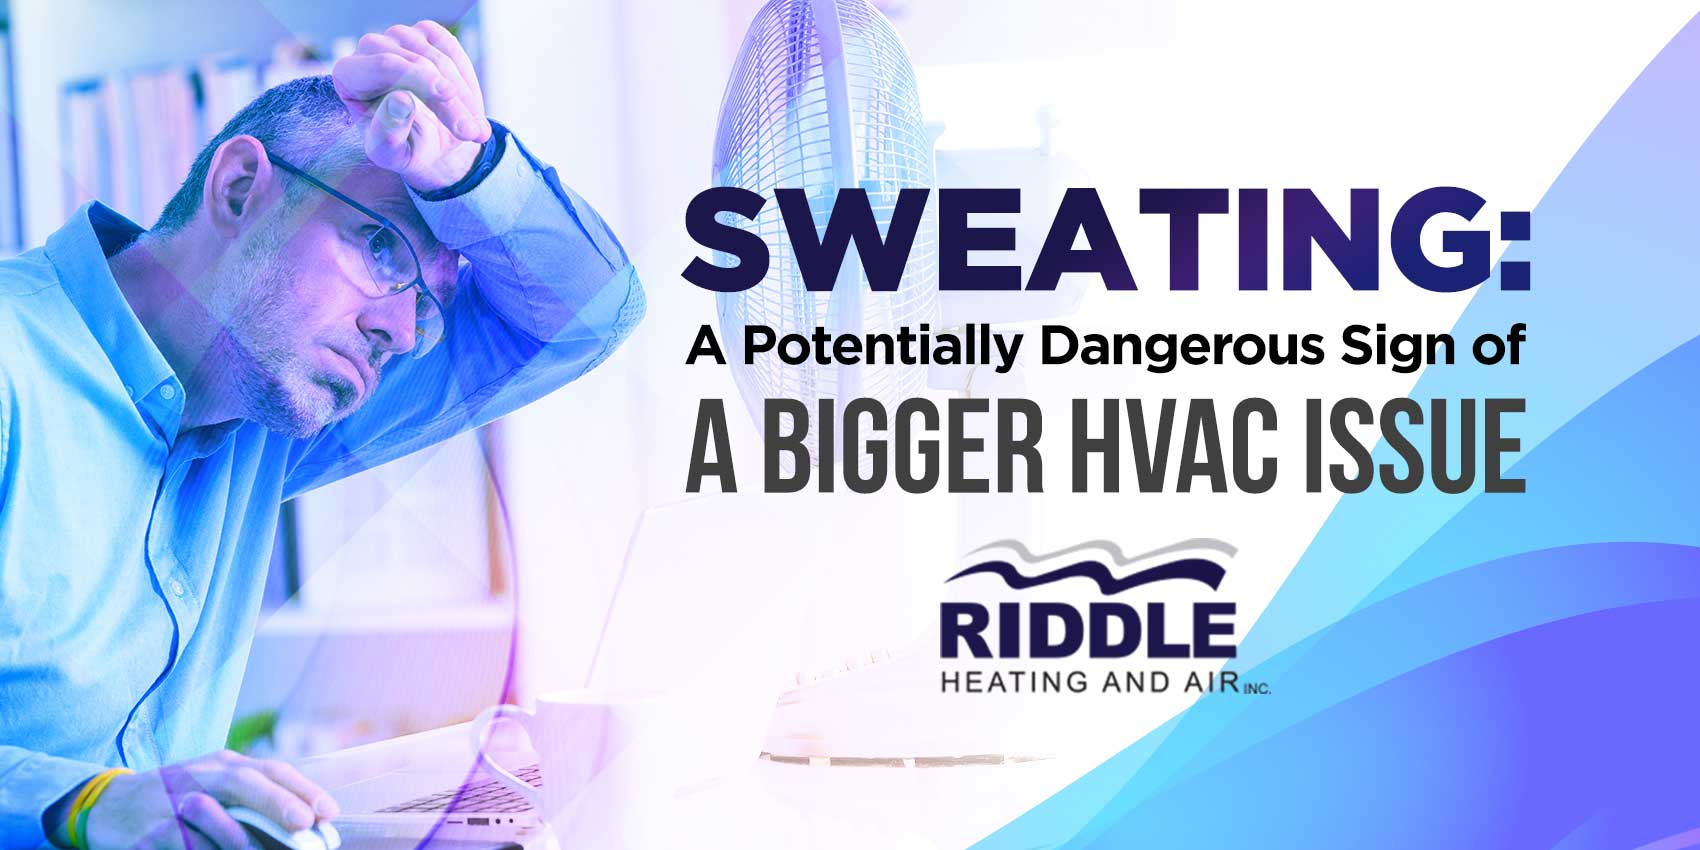 Sweating: A Potentially Dangerous Sign of a Bigger HVAC Issue